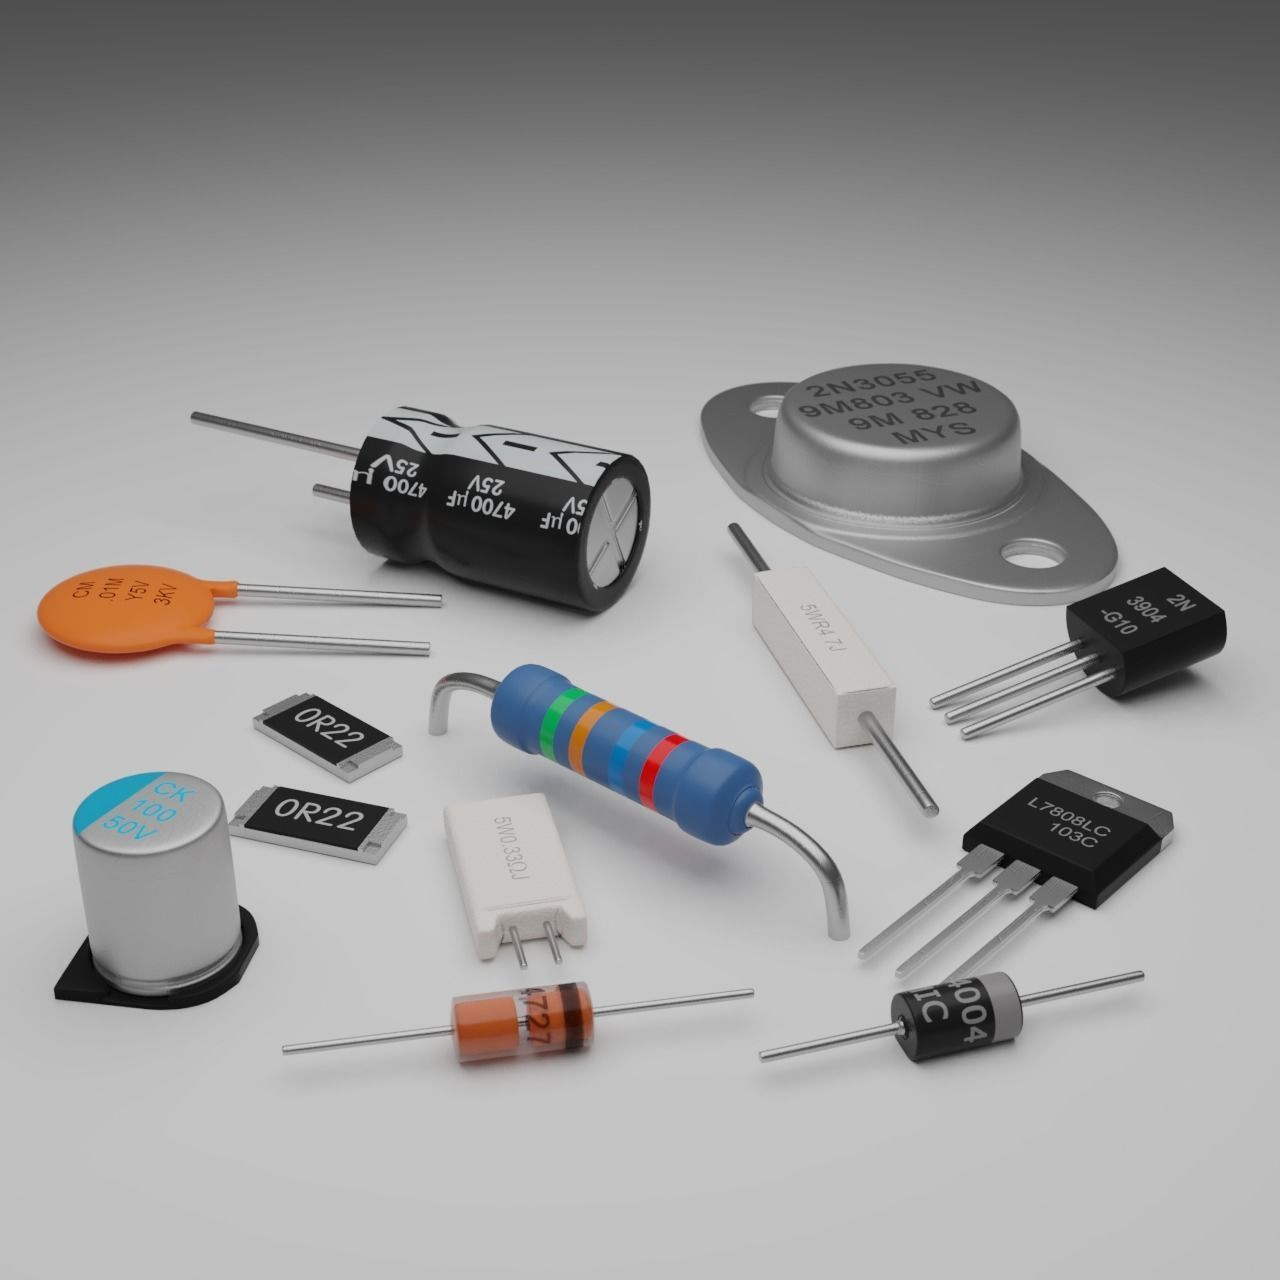 Basic Electronic Components Pack